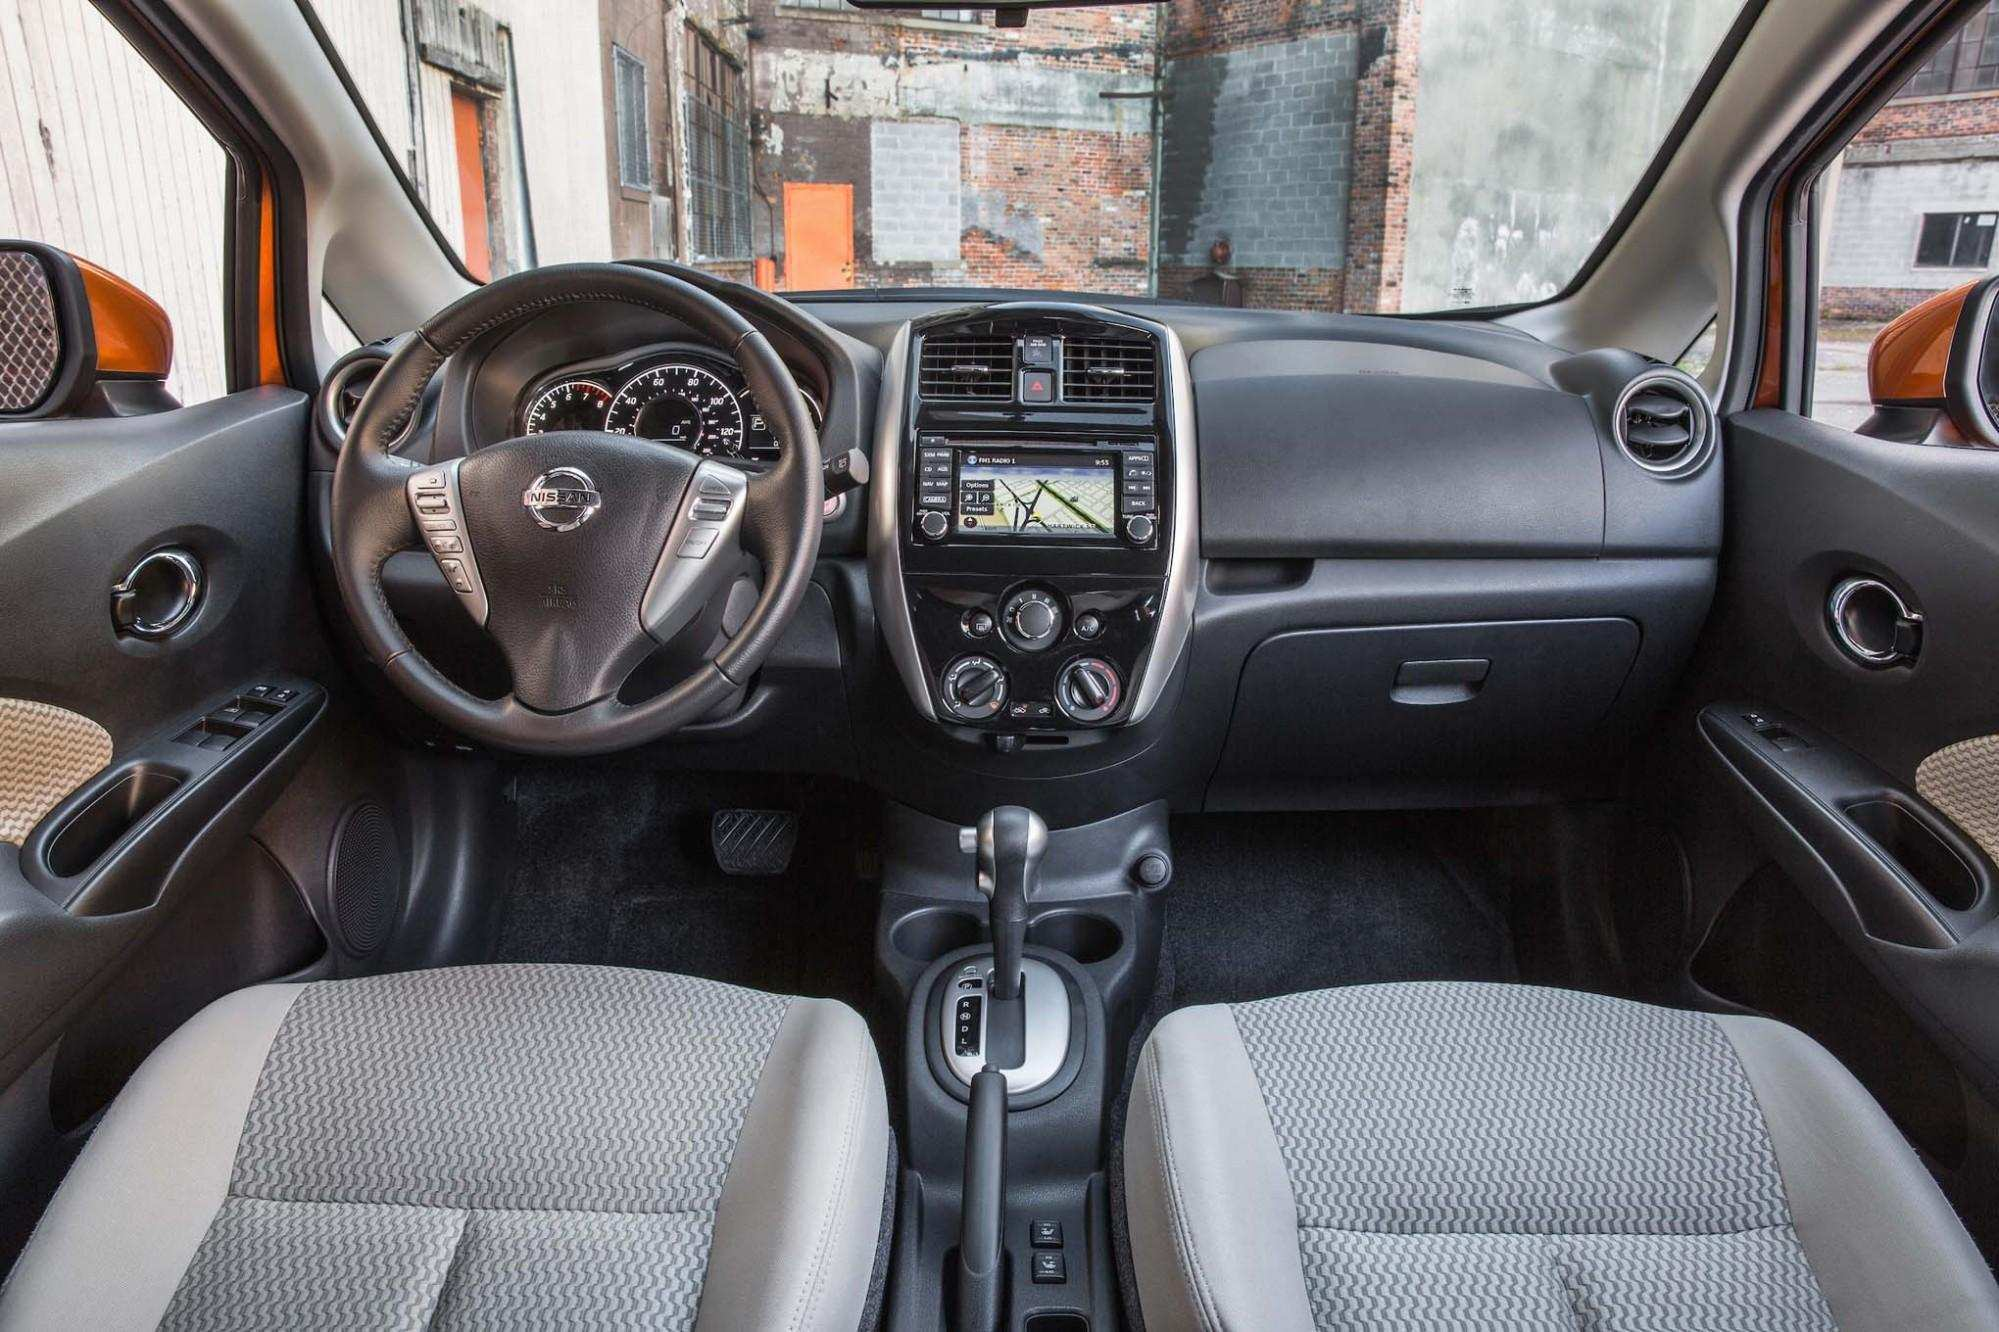 81 Concept of Nissan Versa 2019 Interior Price and Review with Nissan Versa 2019 Interior